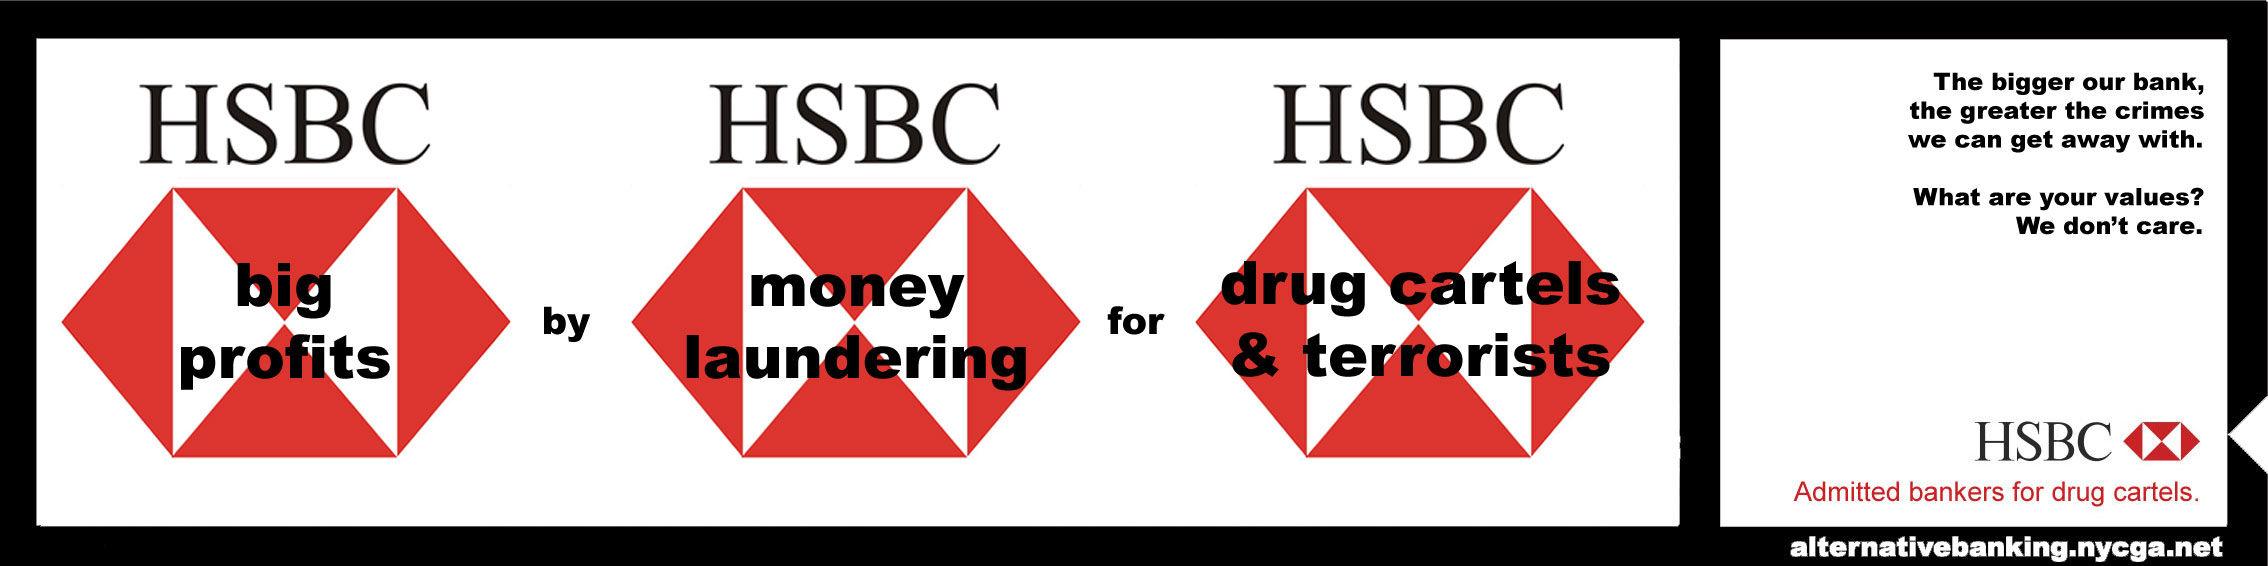 how to close hsbc investdirect account